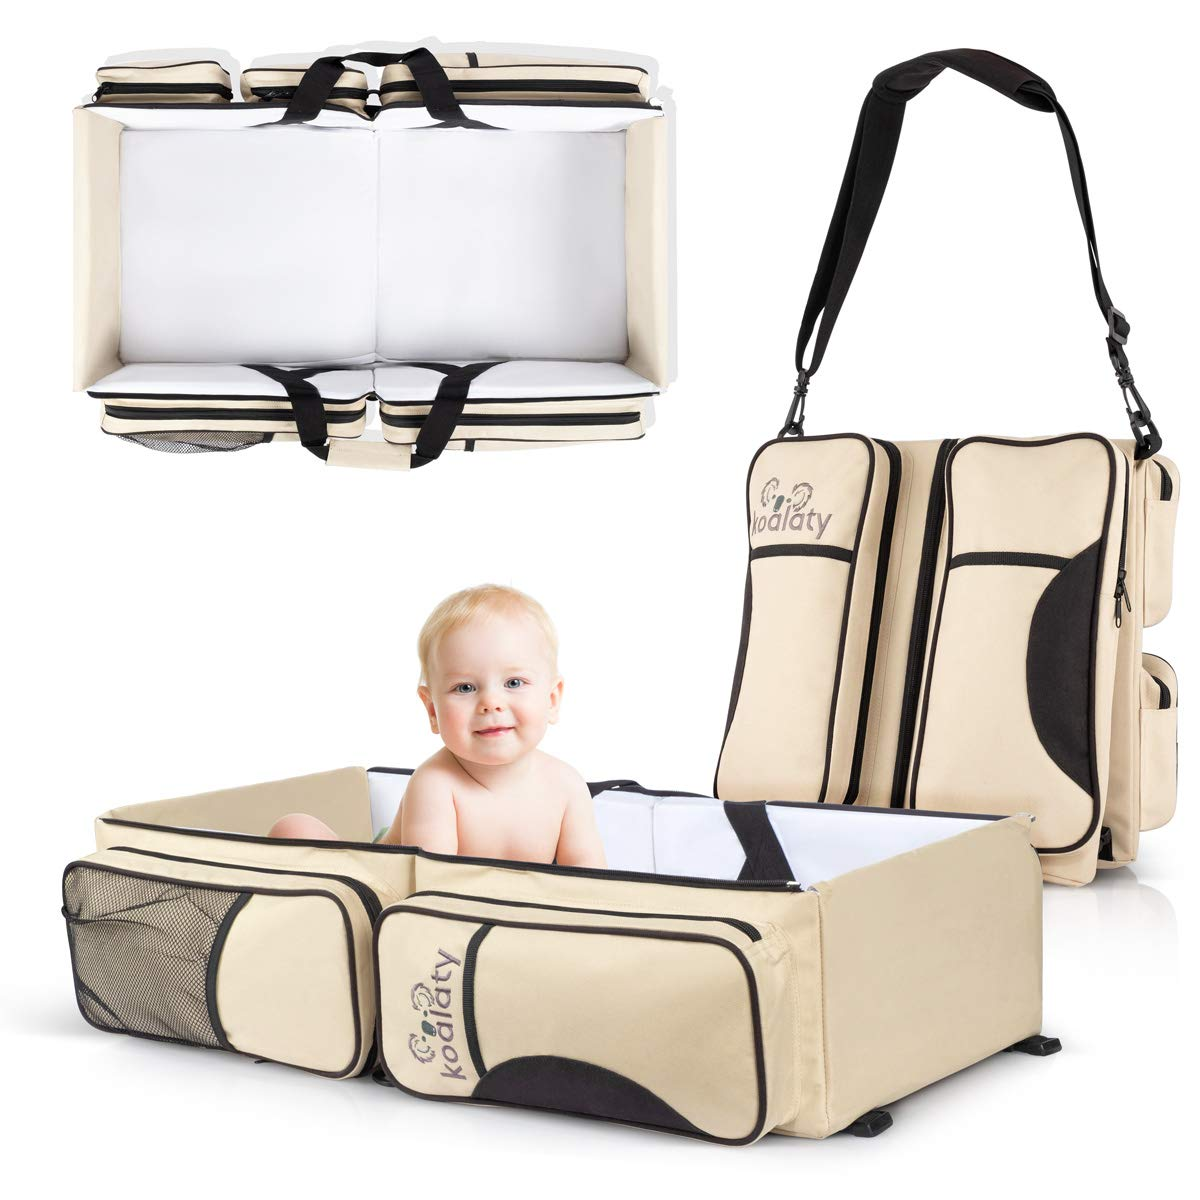 Koalaty 3-in-1 Universal Infant Travel Tote: Portable Bassinet Crib, Changing Station, and Diaper Bag for Newborns or Baby. The Best Baby Shower Gift for New mom and dad.